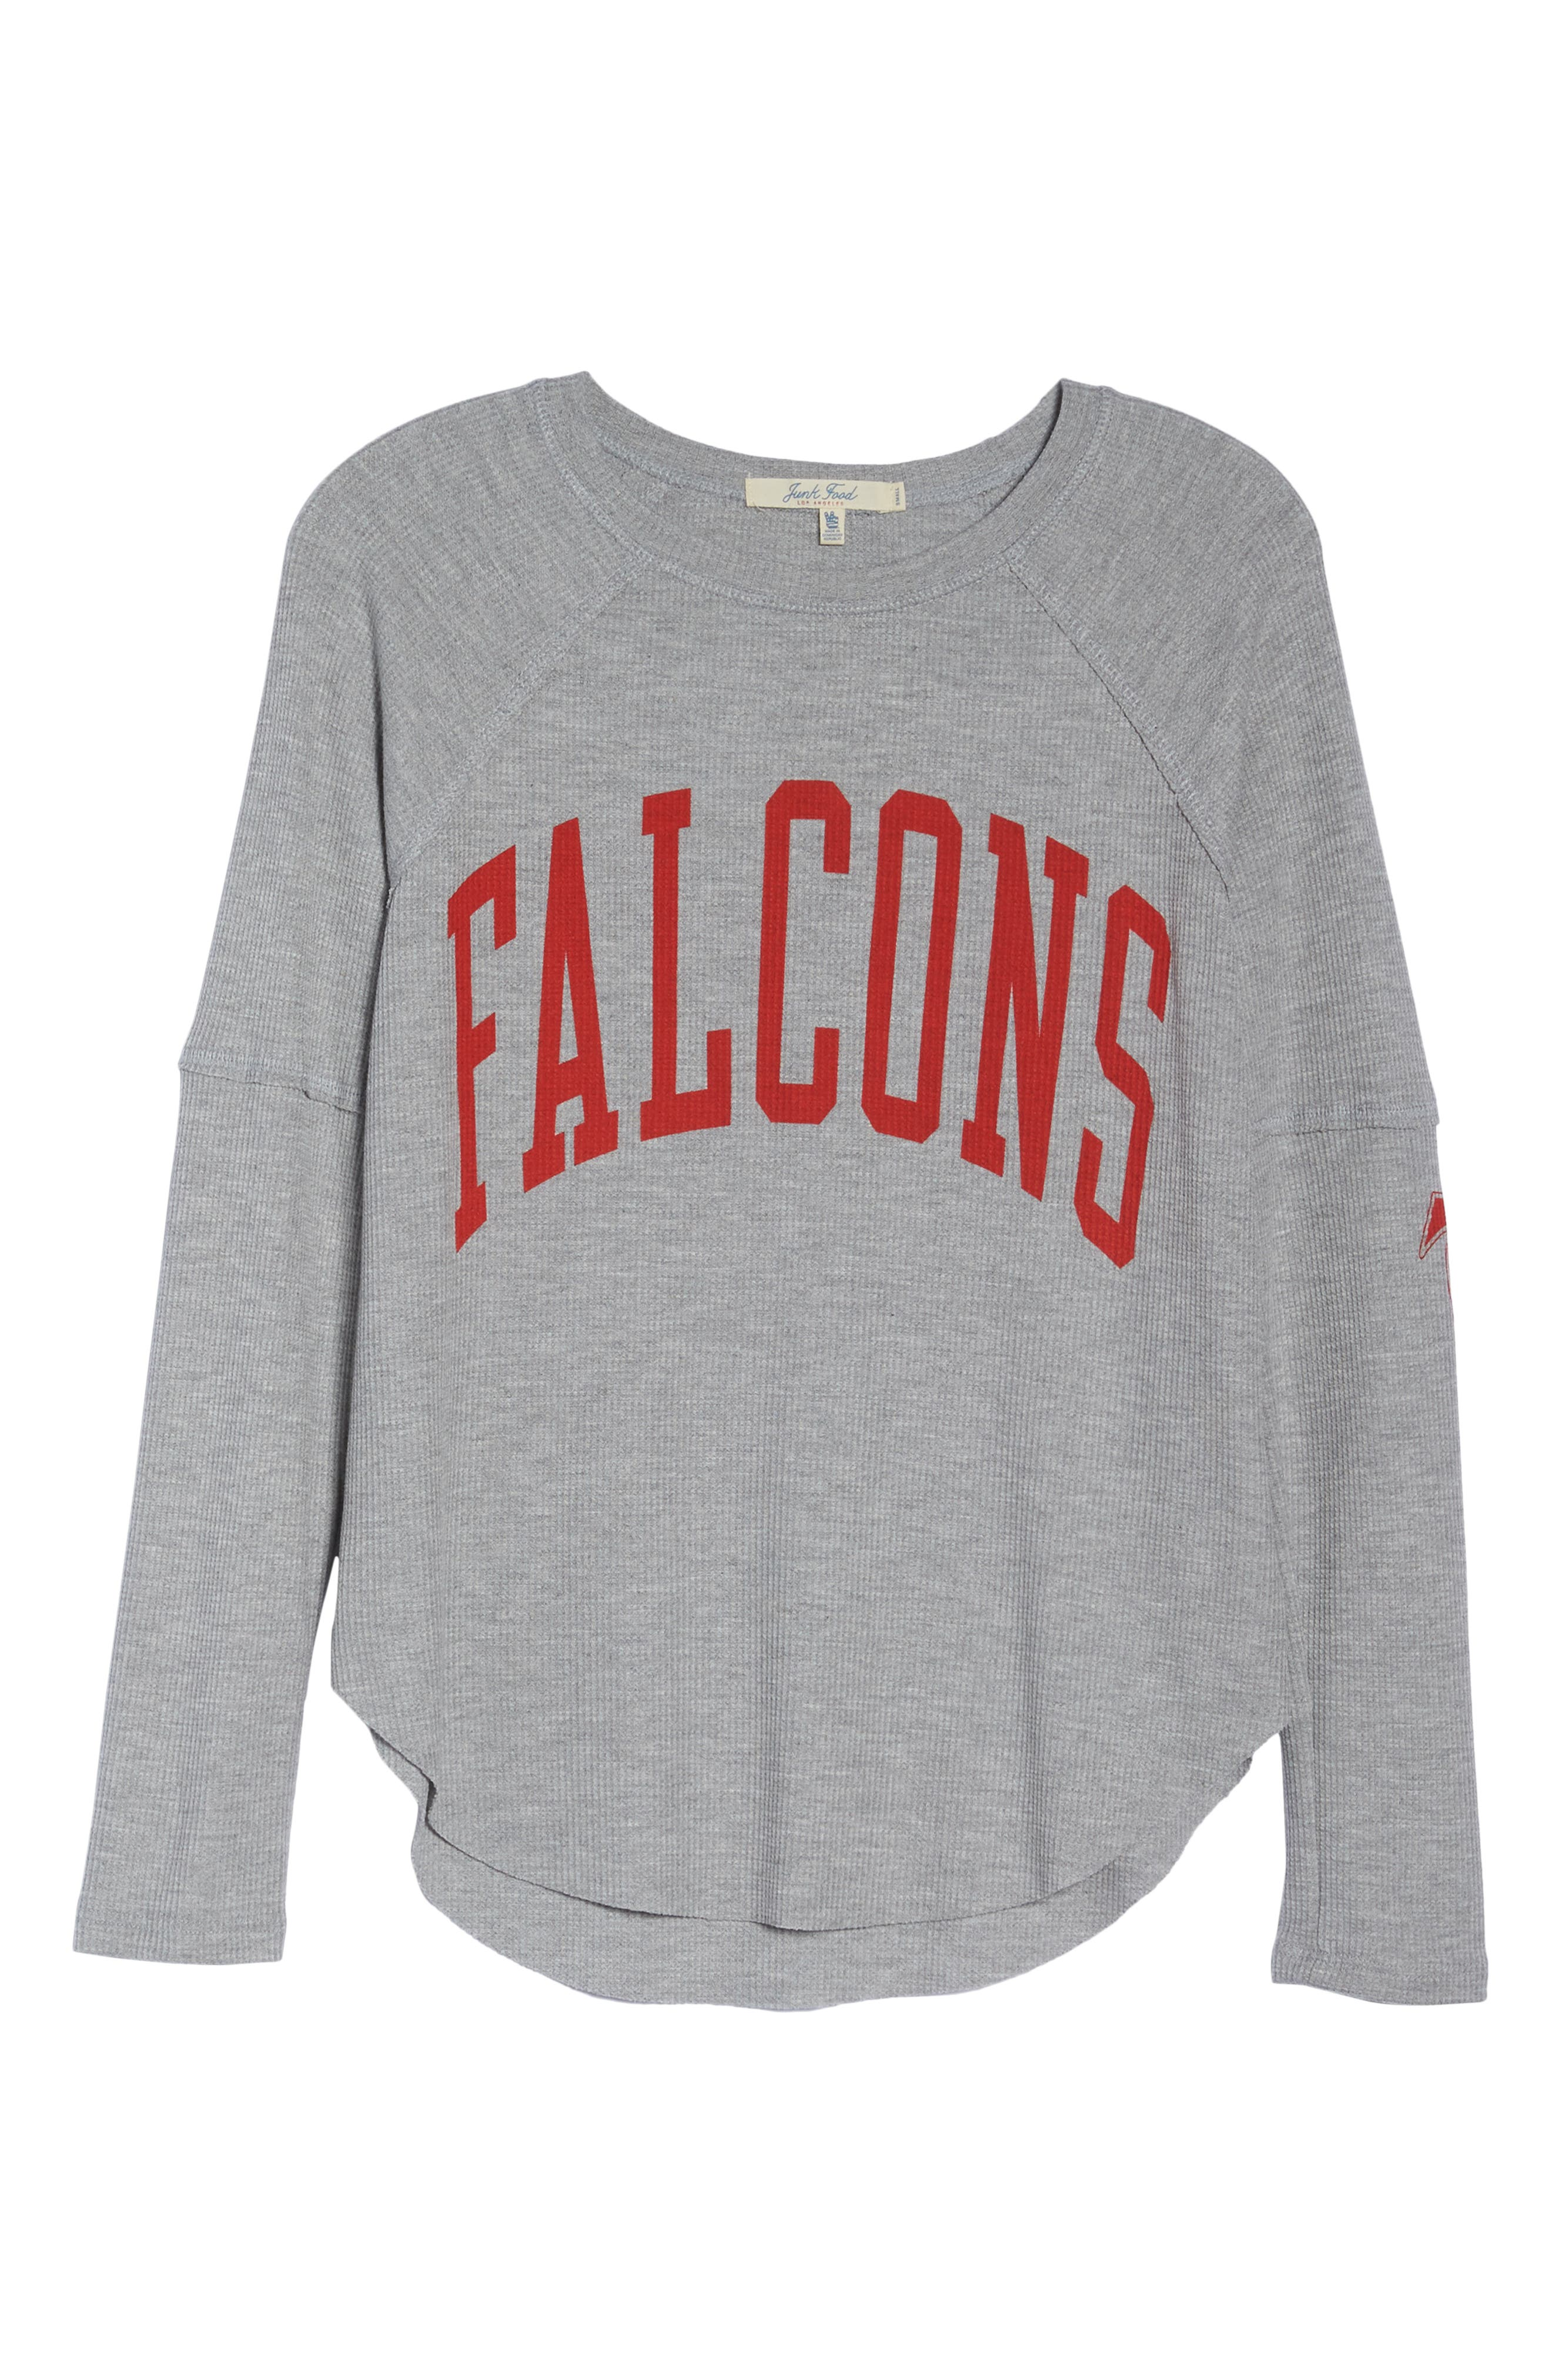 NFL Thermal Tee,                             Alternate thumbnail 6, color,                             FALCONS